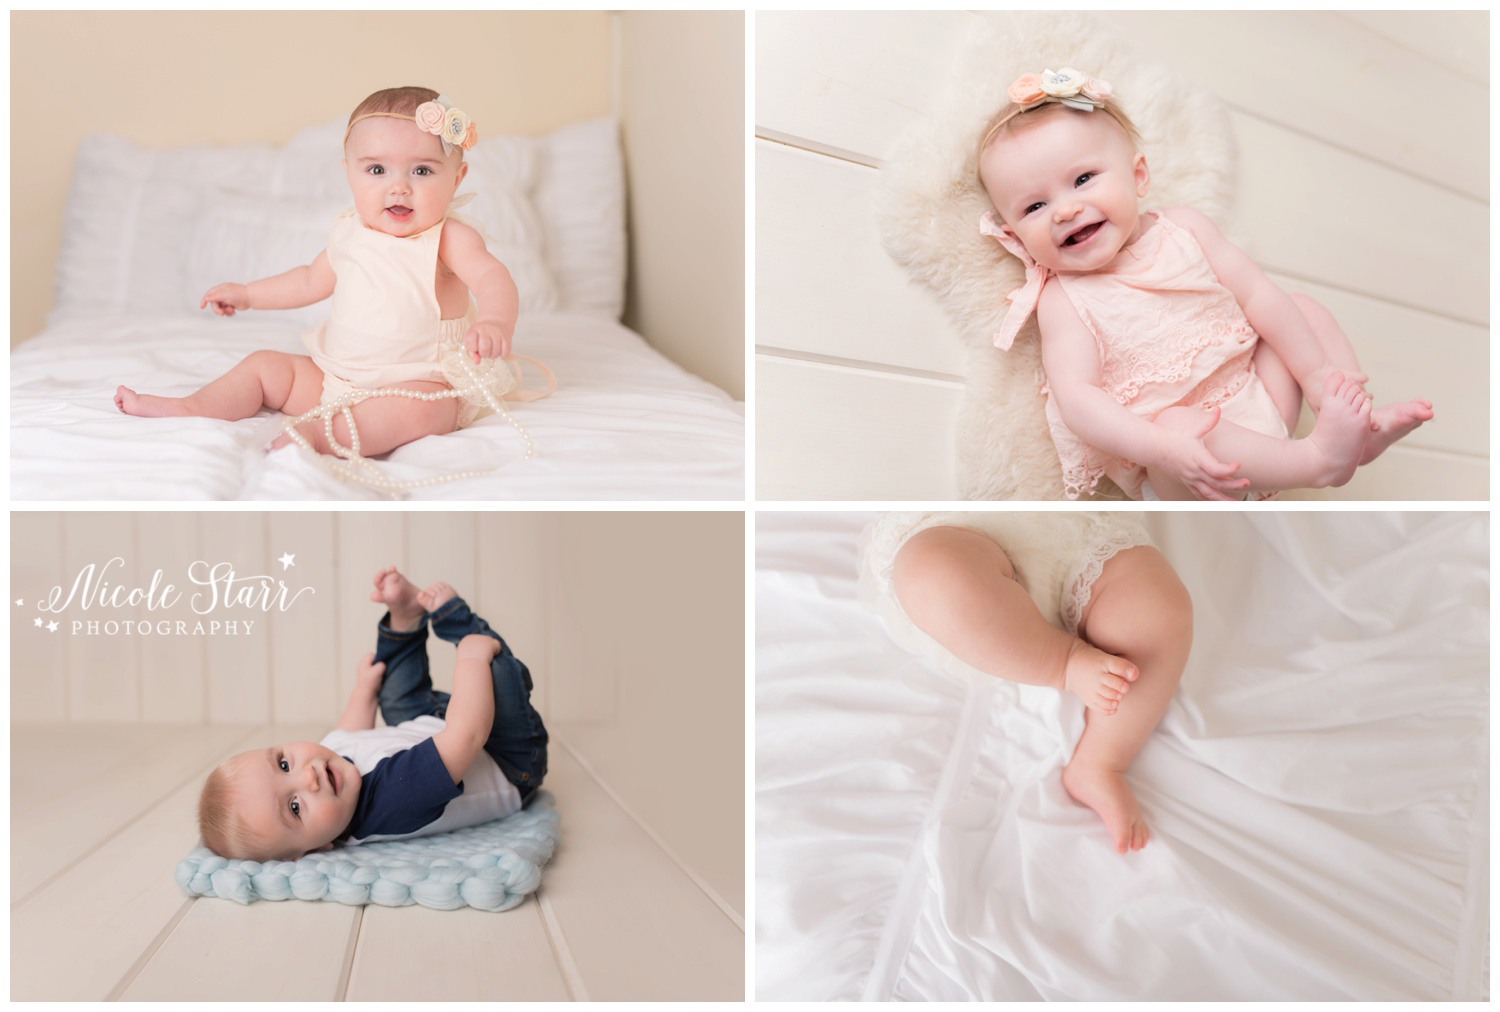 Nicole Starr Photography  |  Saratoga Springs baby photographer  |  Albany baby photographer  |  Boston baby photographer  |  Milestone portrait session